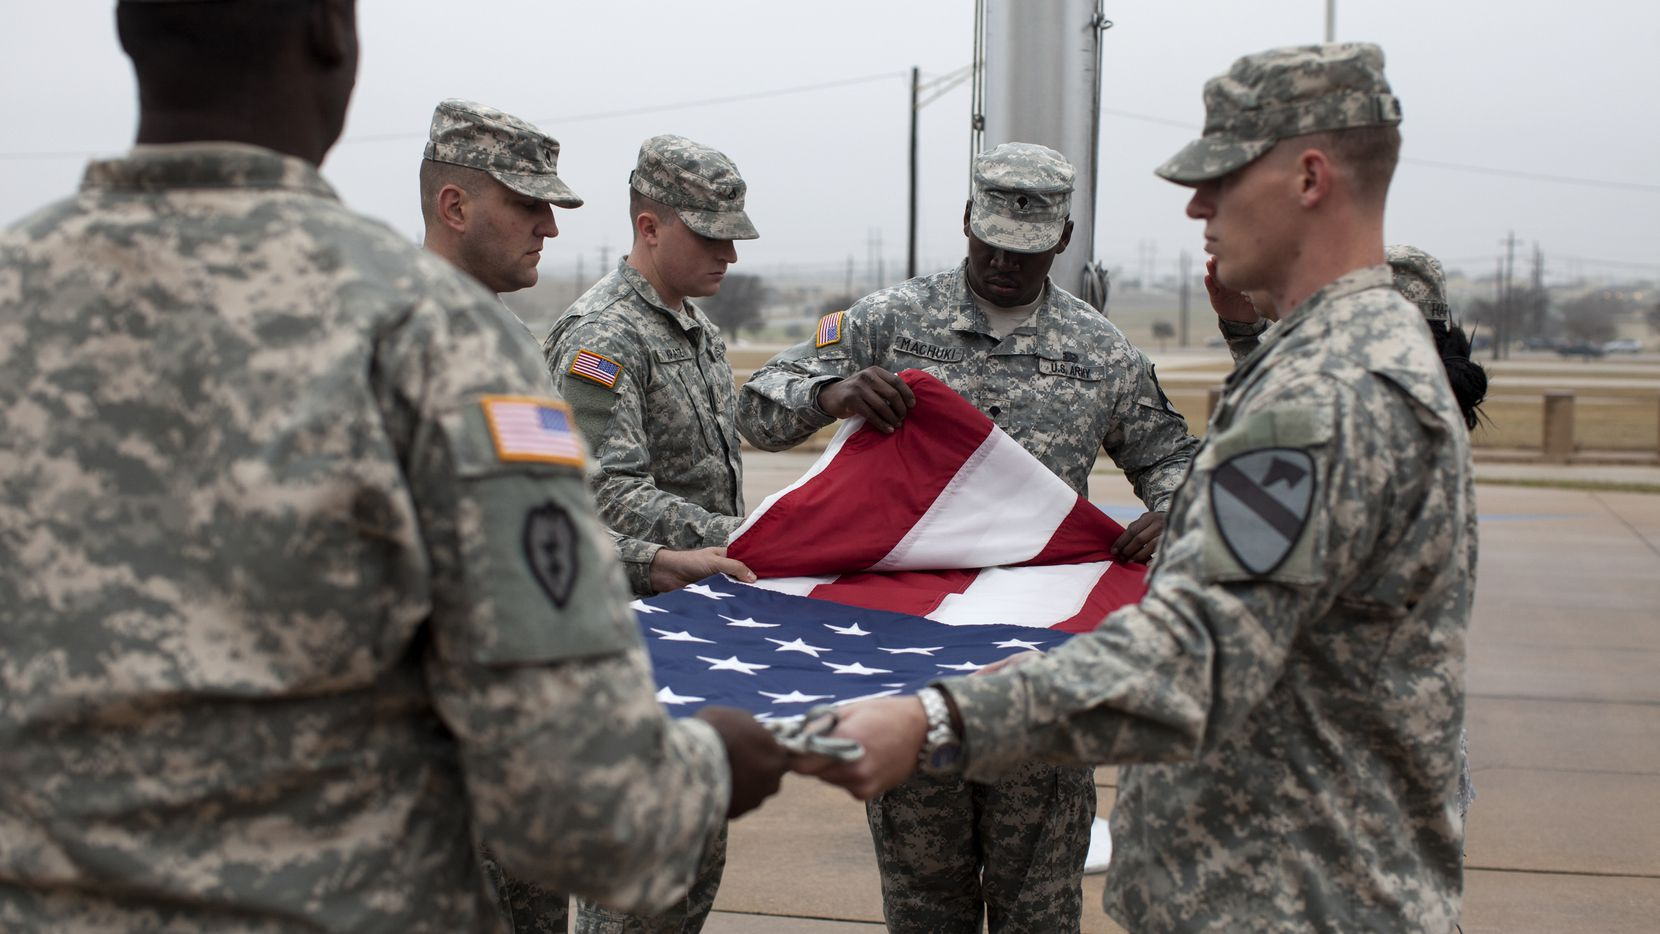 Soldiers fold a lowered flag at Fort Hood on Dec. 30 to mark the official end of the war in Afghanistan.